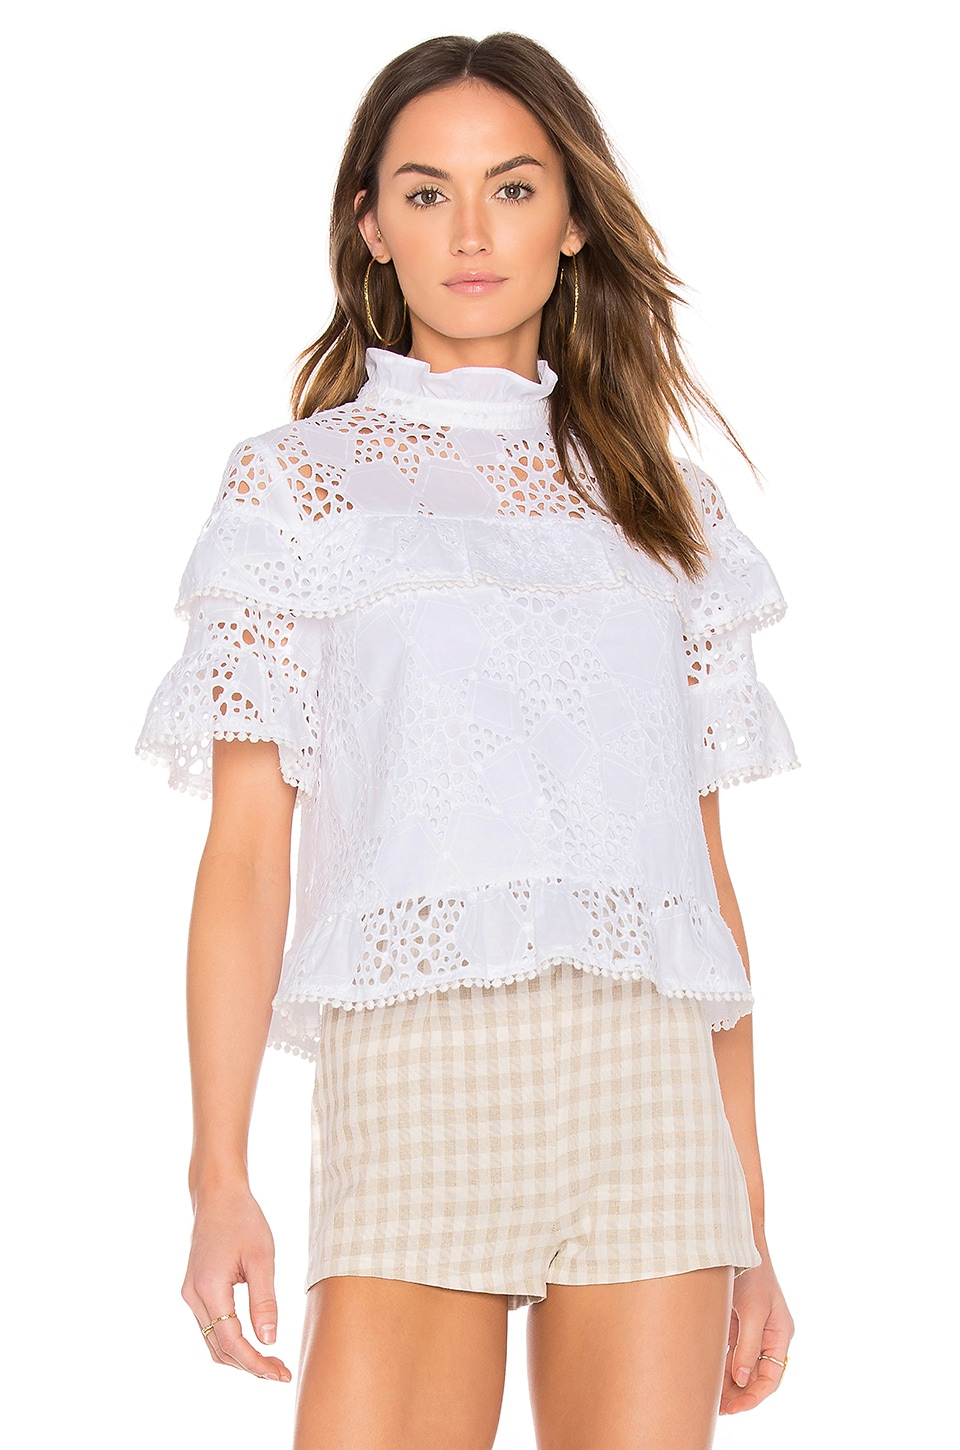 J.O.A. Ruffle Neck Lace Mix Top in White